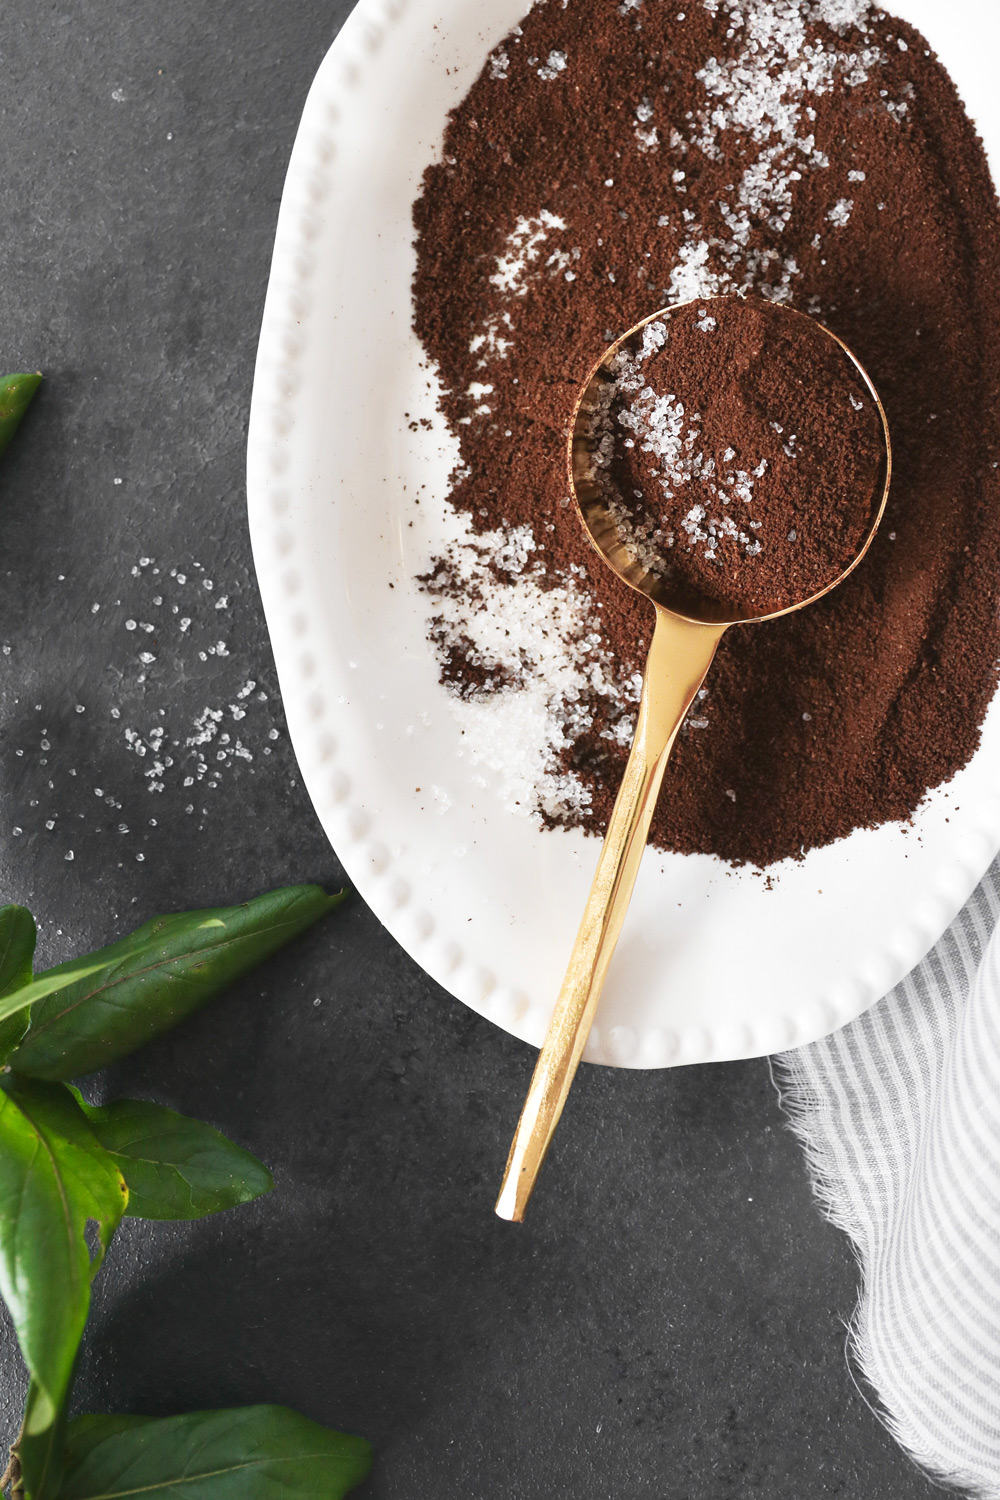 15 Kitchen Beauty Ingredients - Coffee | HelloGlow.co